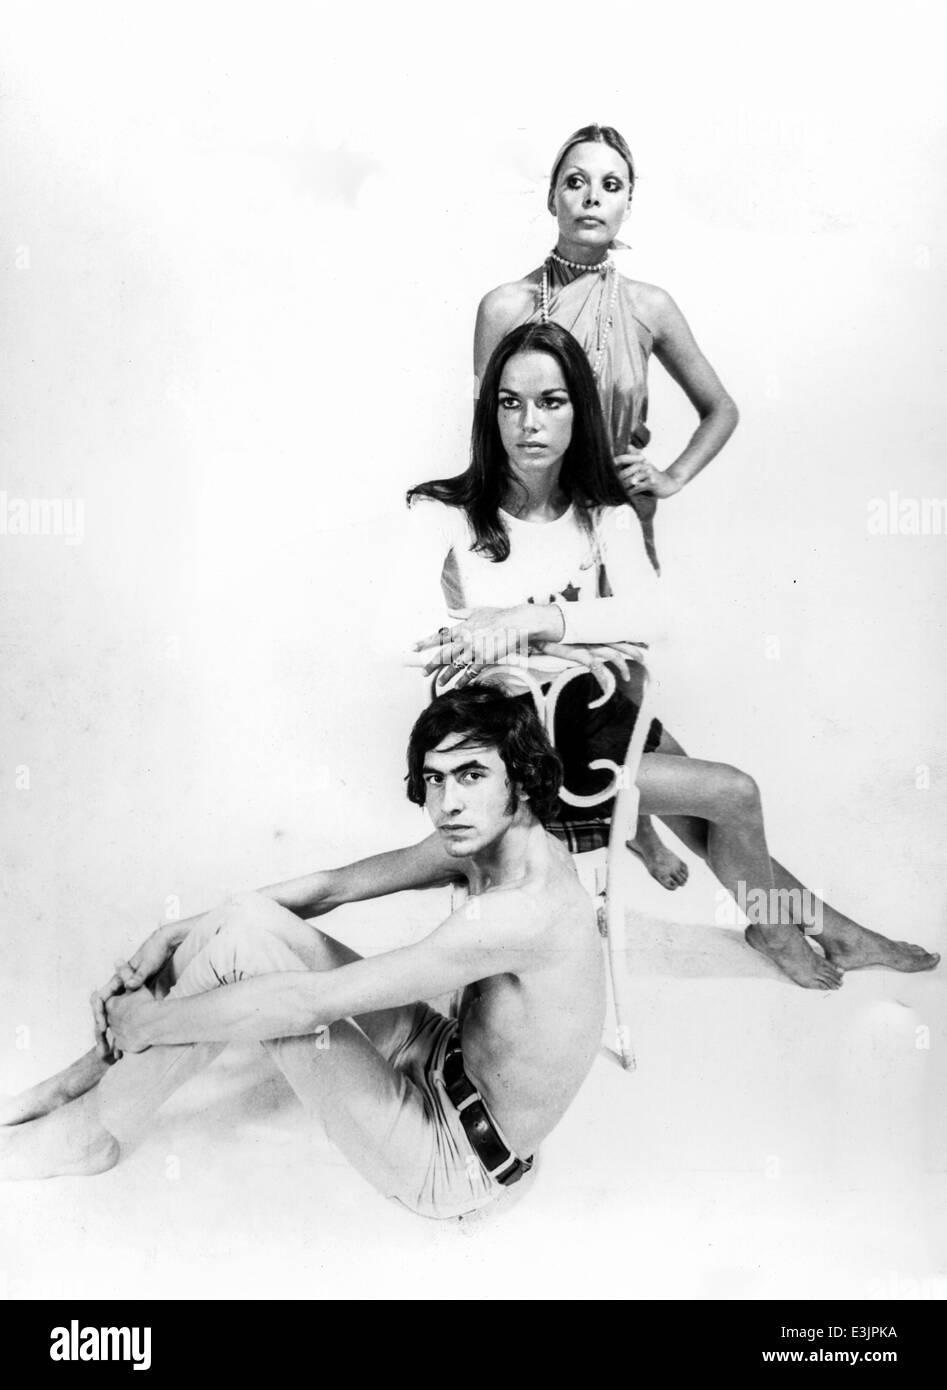 1970's style,models during a photo shoot - Stock Image